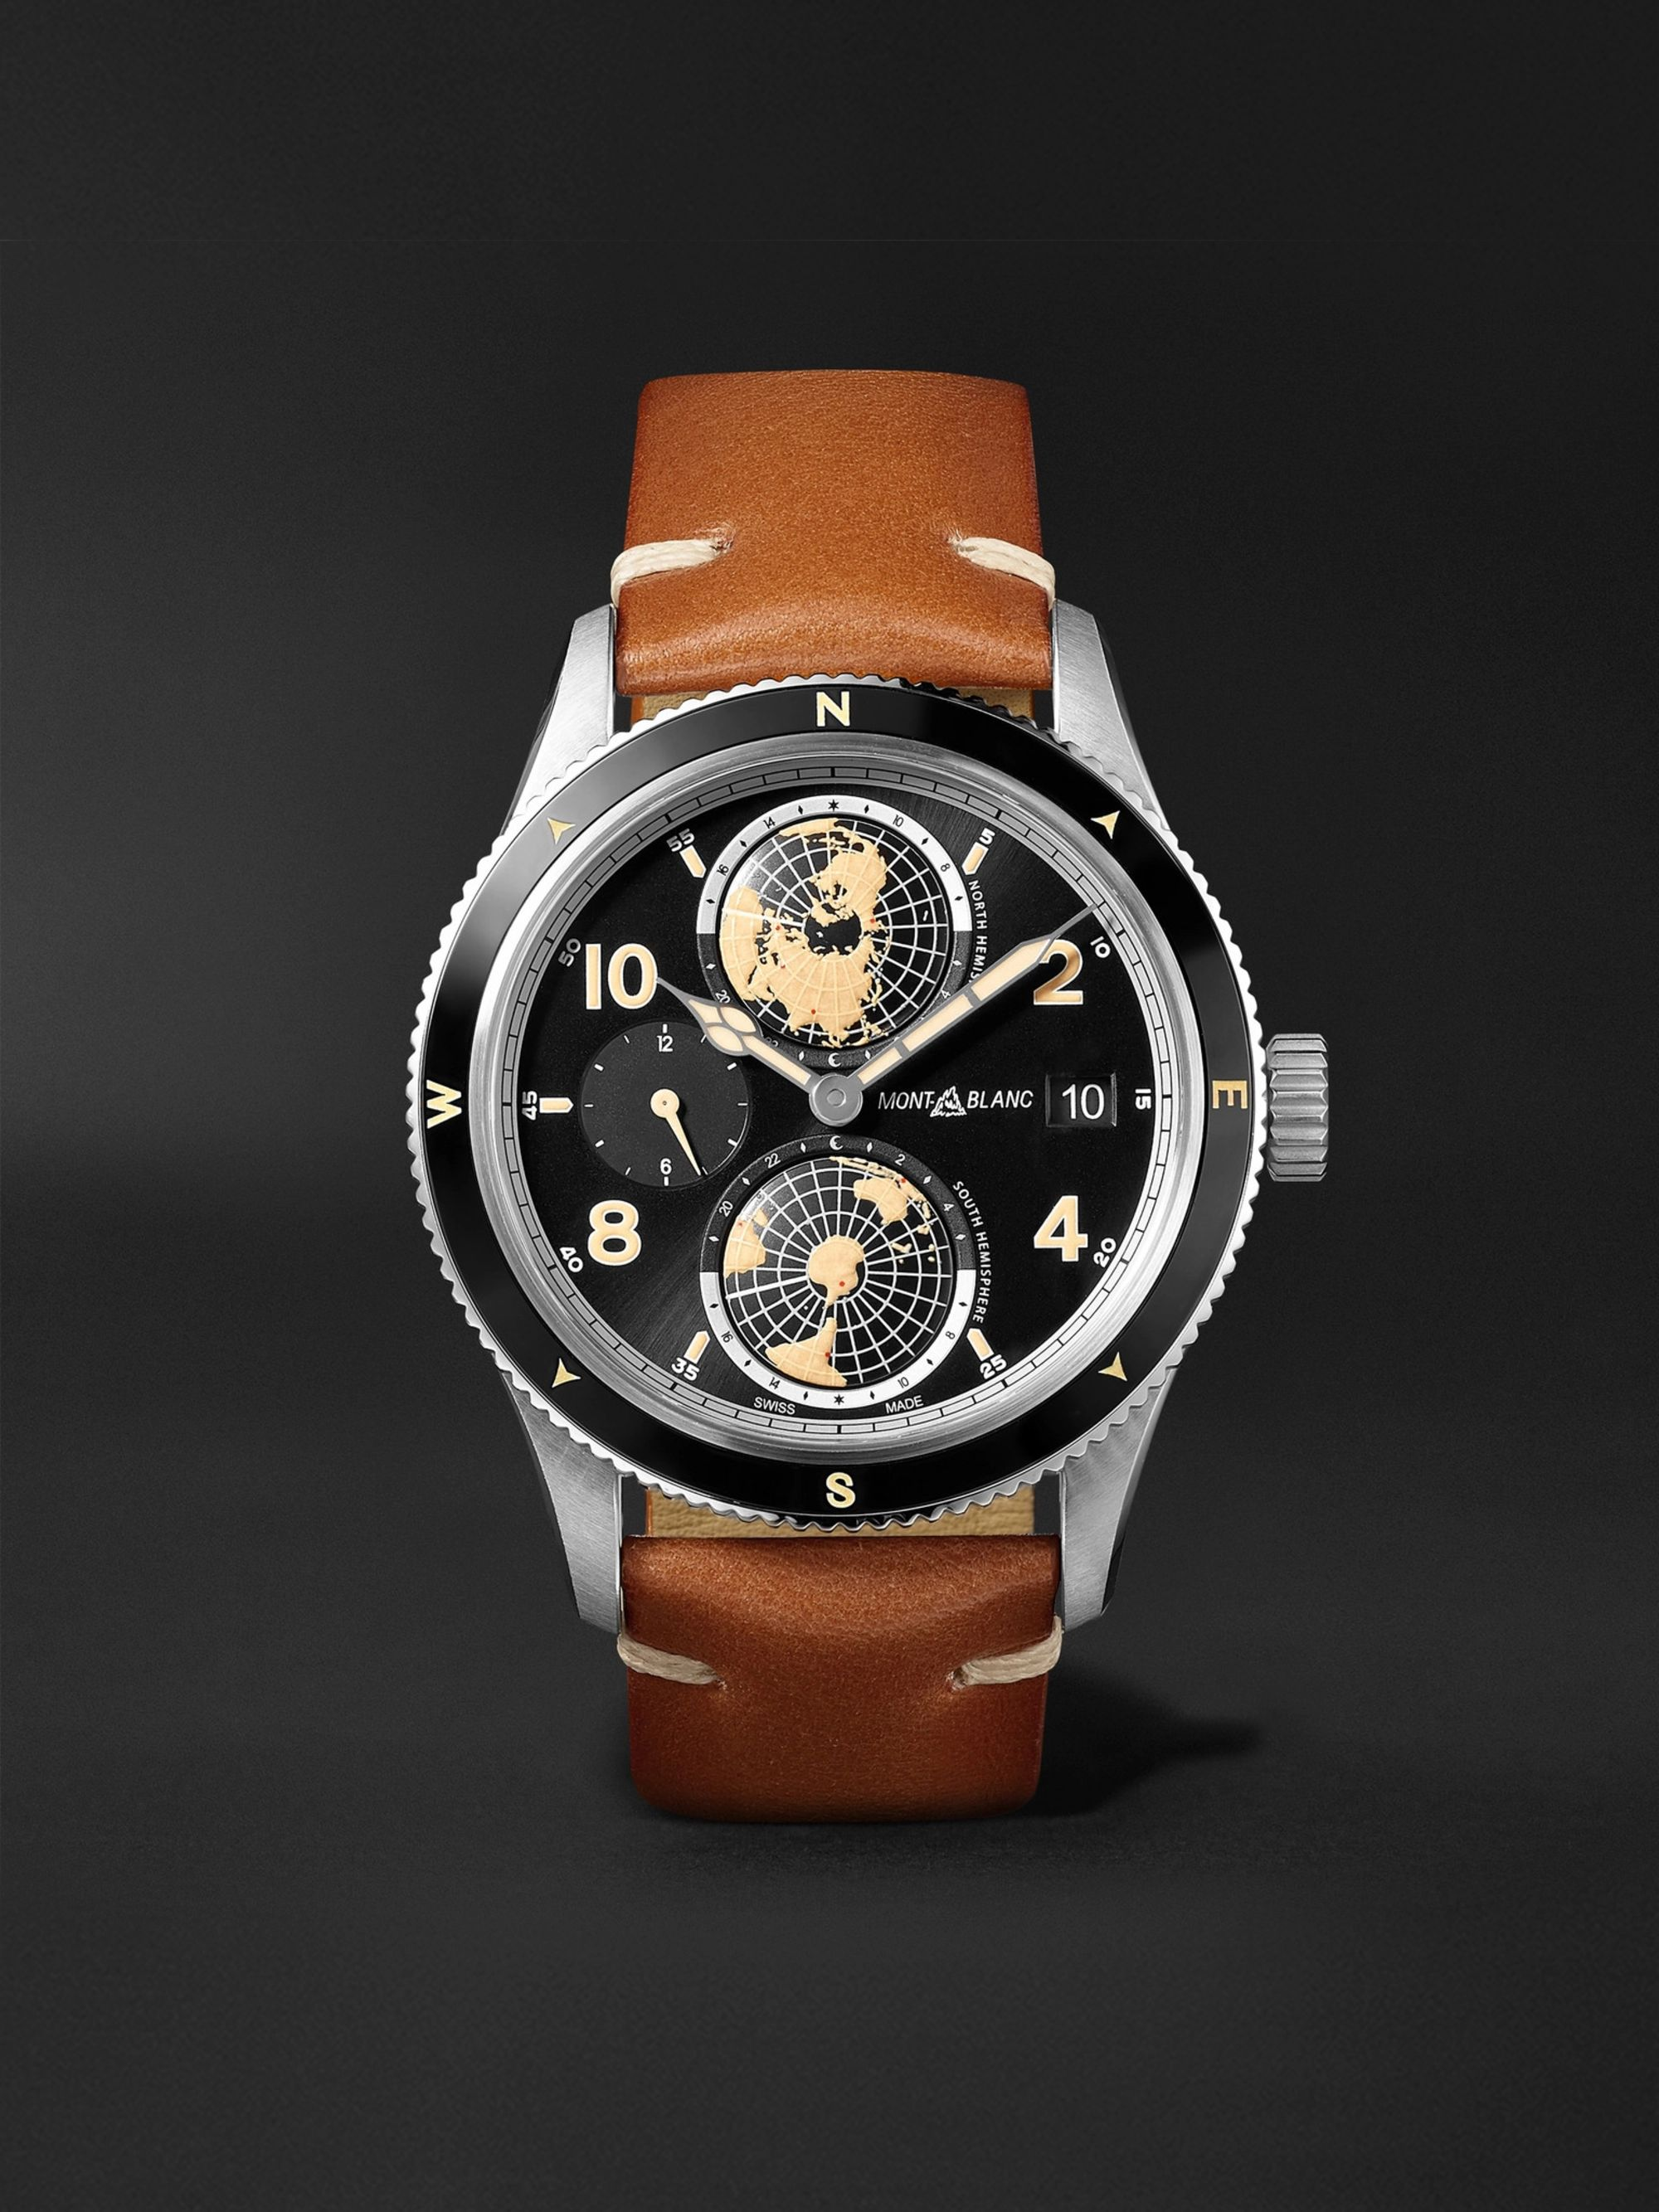 MONTBLANC 1858 Geosphere Automatic GMT 42mm Stainless Steel, Ceramic and Leather Watch, Ref. No. 119286